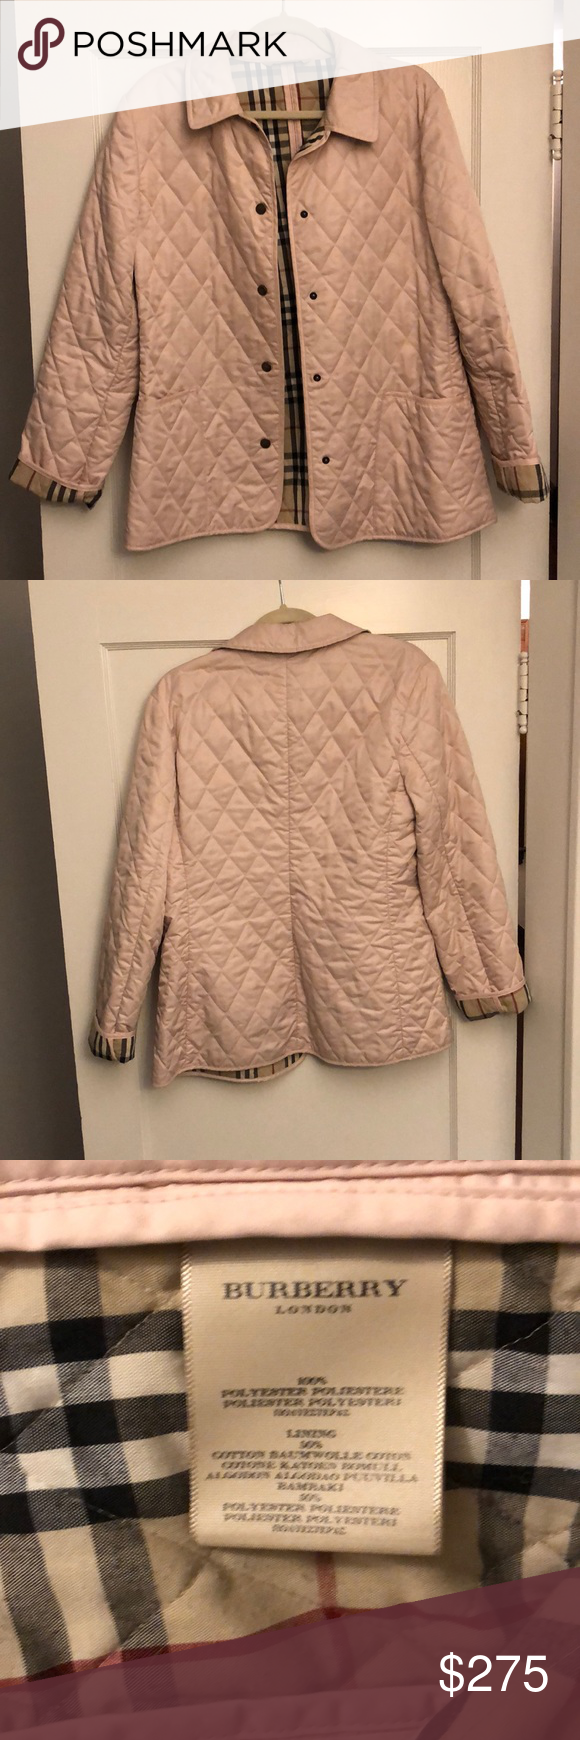 Burberry Quilted Jacket With Images Burberry Quilted Jacket Quilted Jacket Jackets